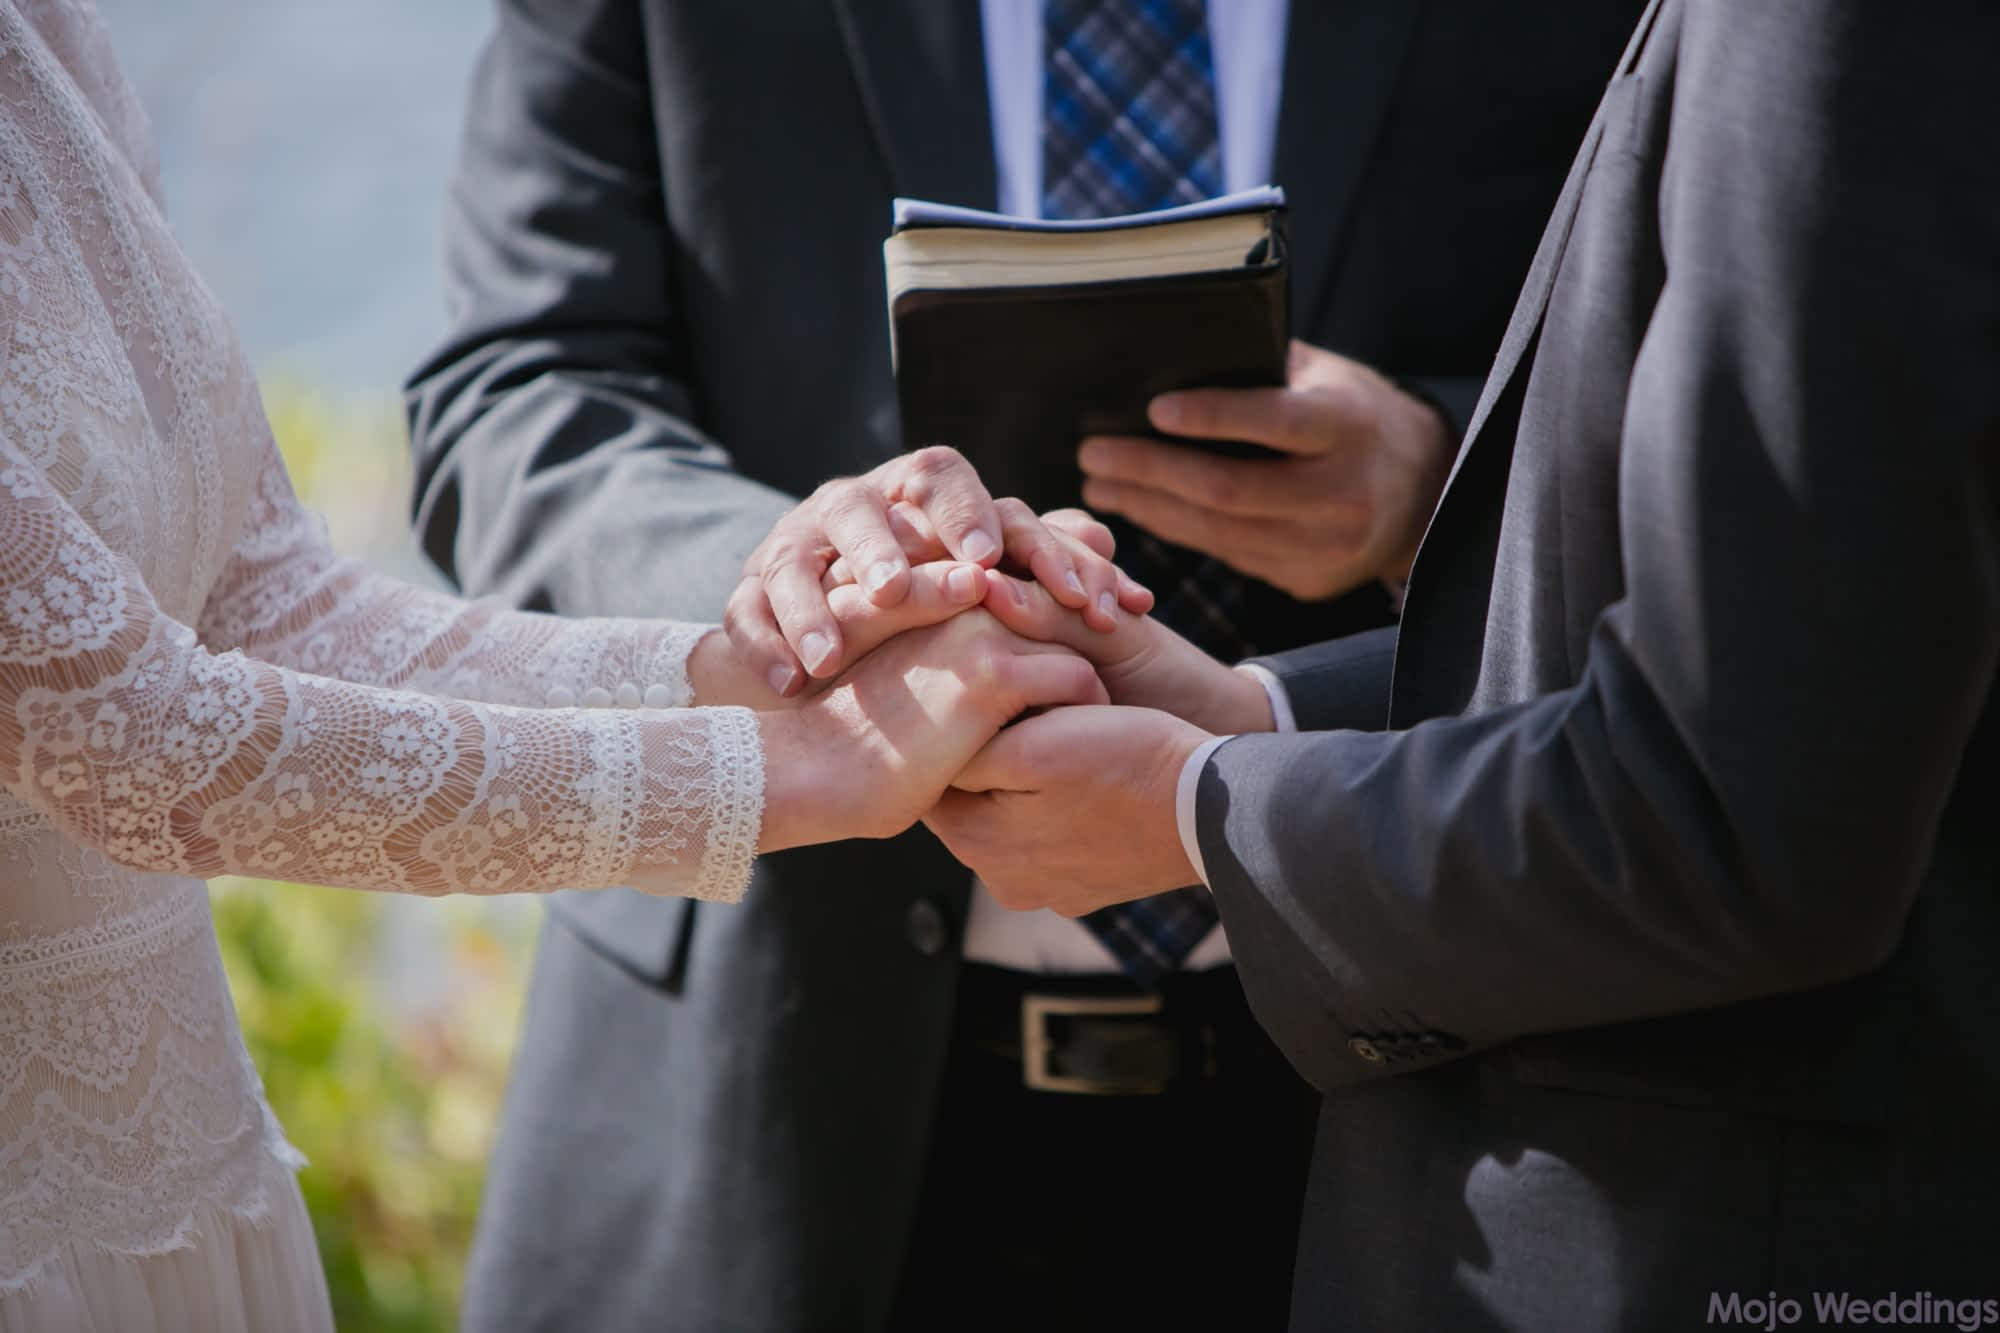 A close up of the hands of the bride, groom, and officiant.